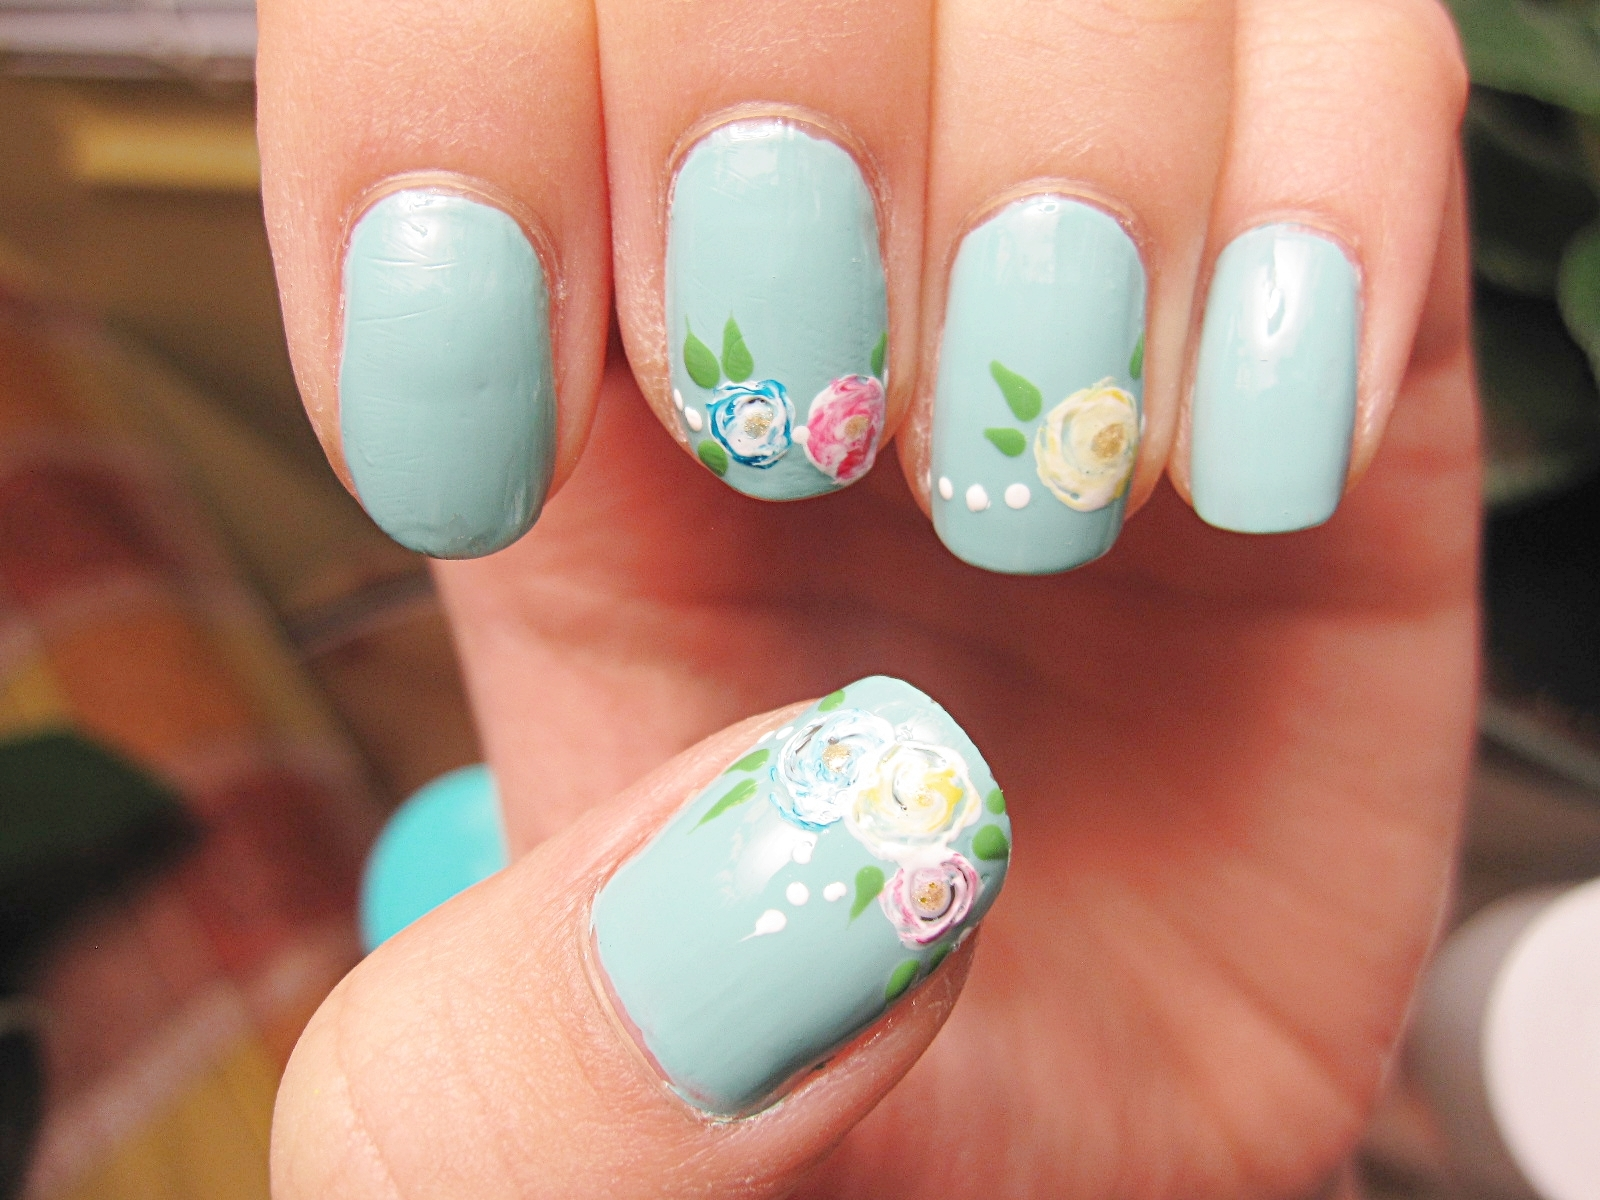 Simple nail designs pccala - Cute nail art designs to do at home ...